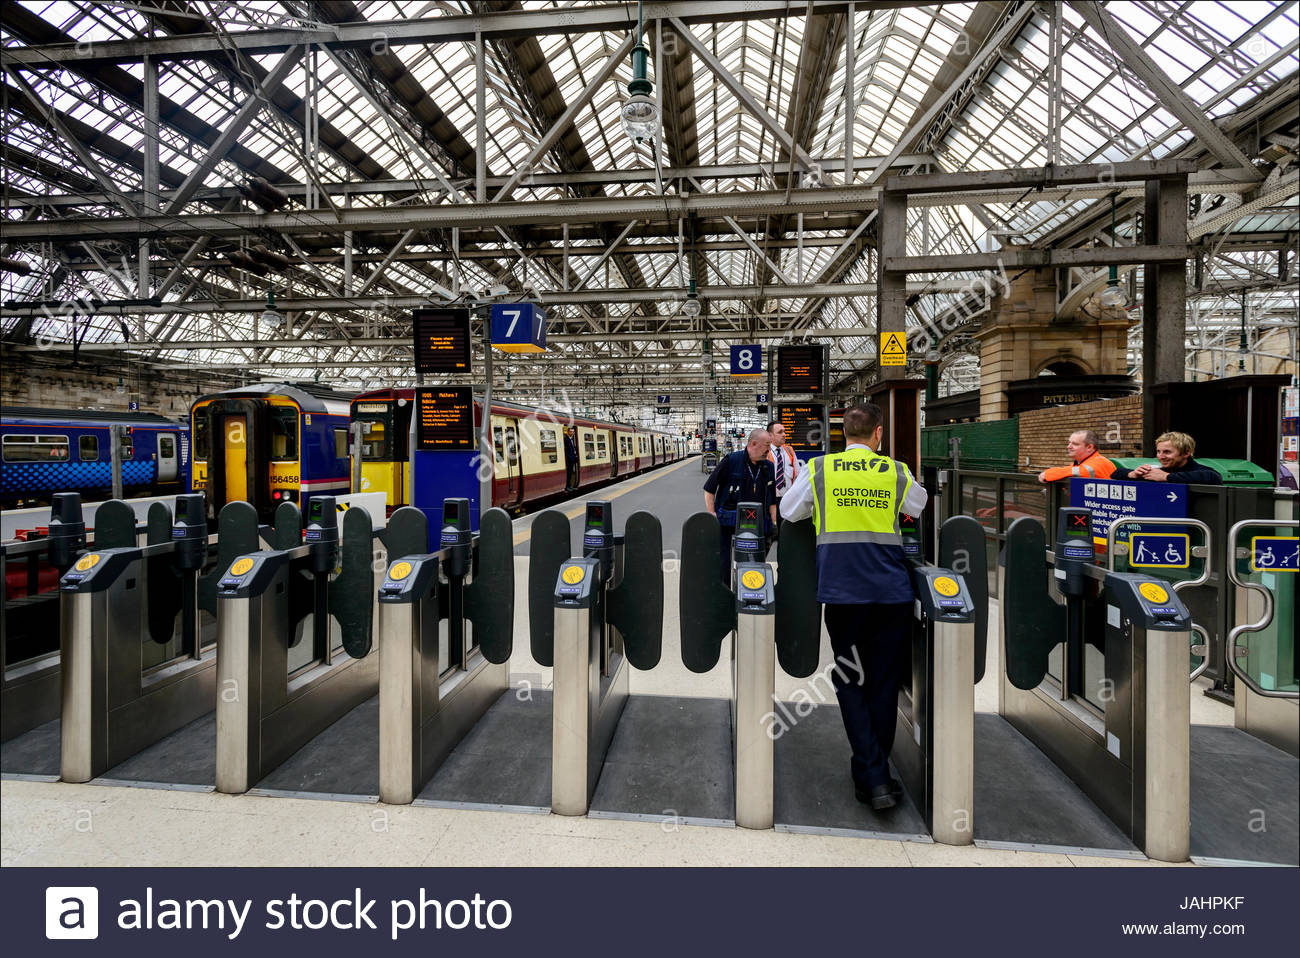 Turnstiles at the Central Railway Station, opened by the Caledonian Railway inn 1879, a major mainline terminus - Stock Image